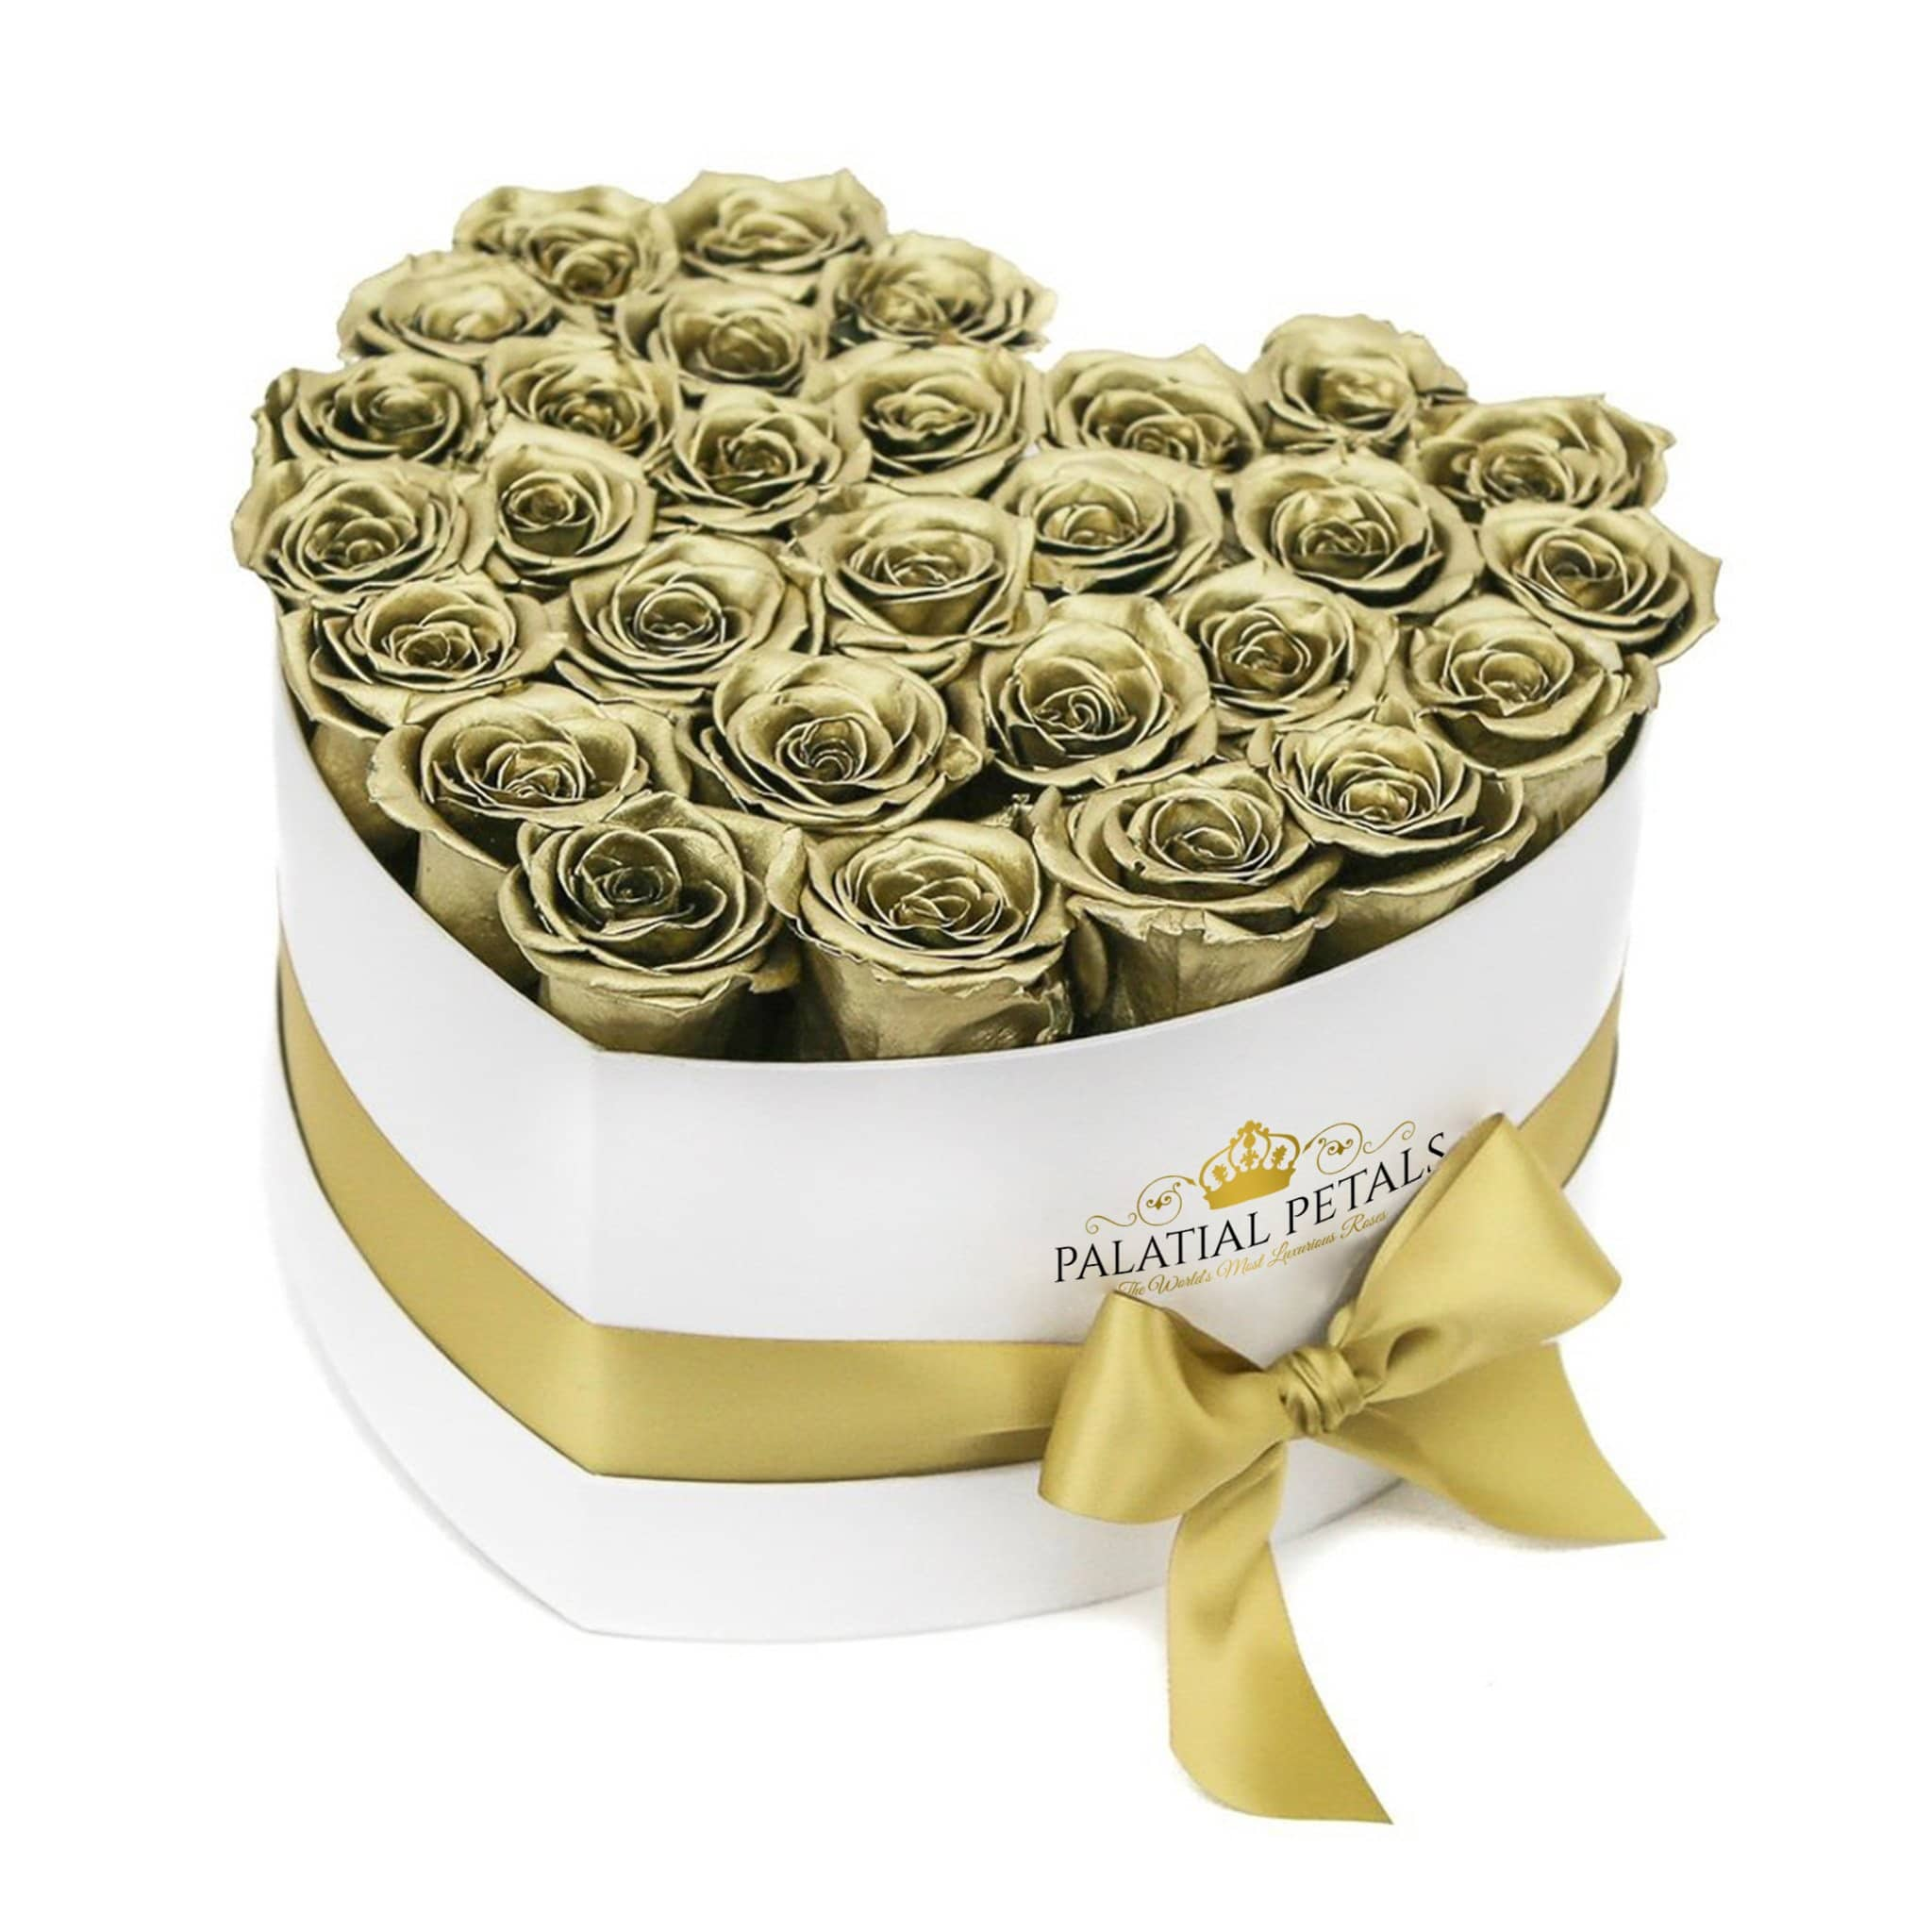 Love Heart Rose Box - 24k Gold